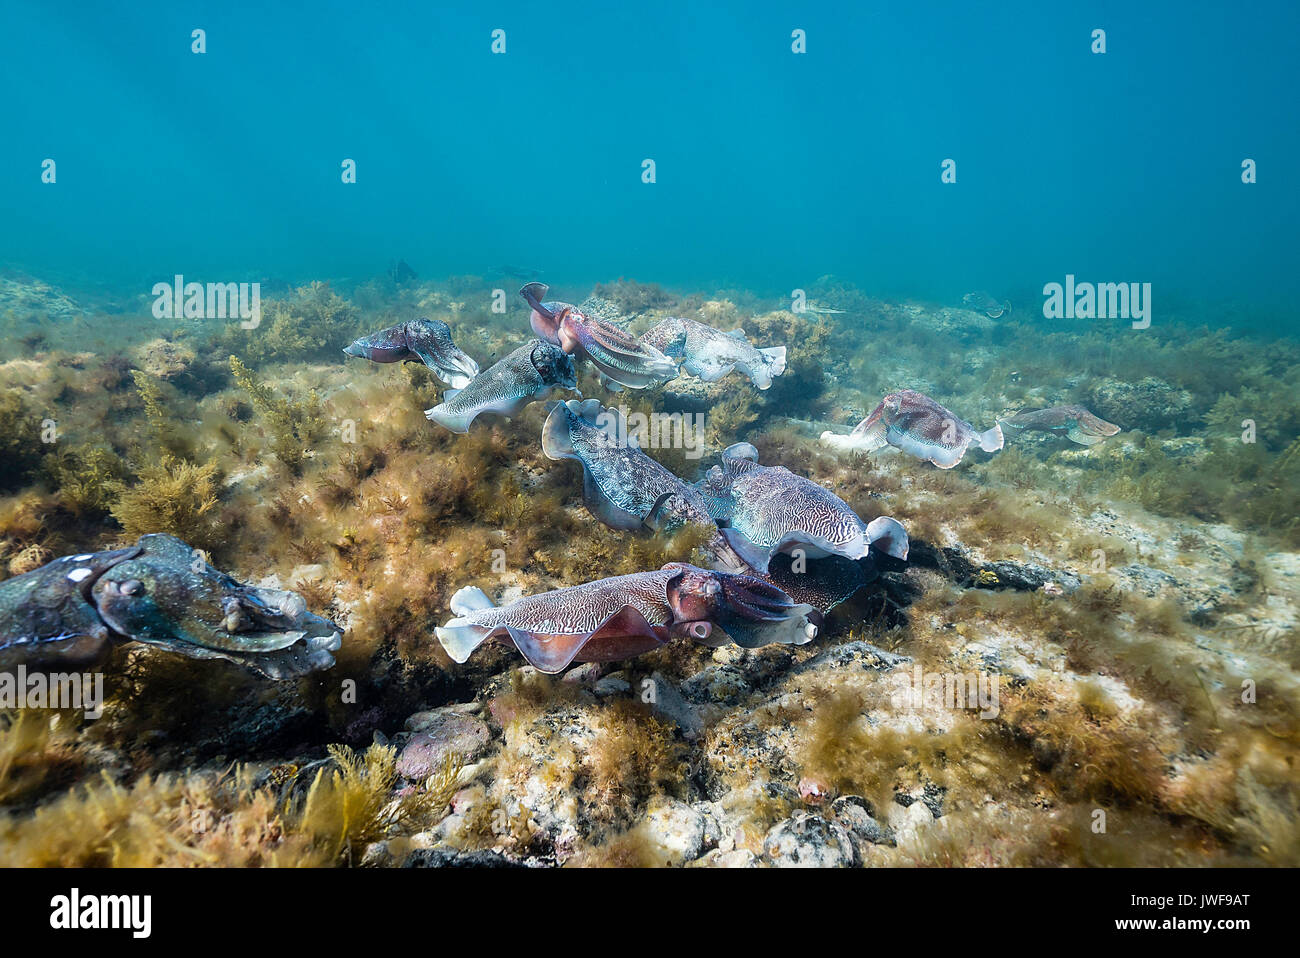 Male Australian giant cuttlefish protecting his female from other males while she lays her eggs during the mating season, Whyalla, South Australia. - Stock Image